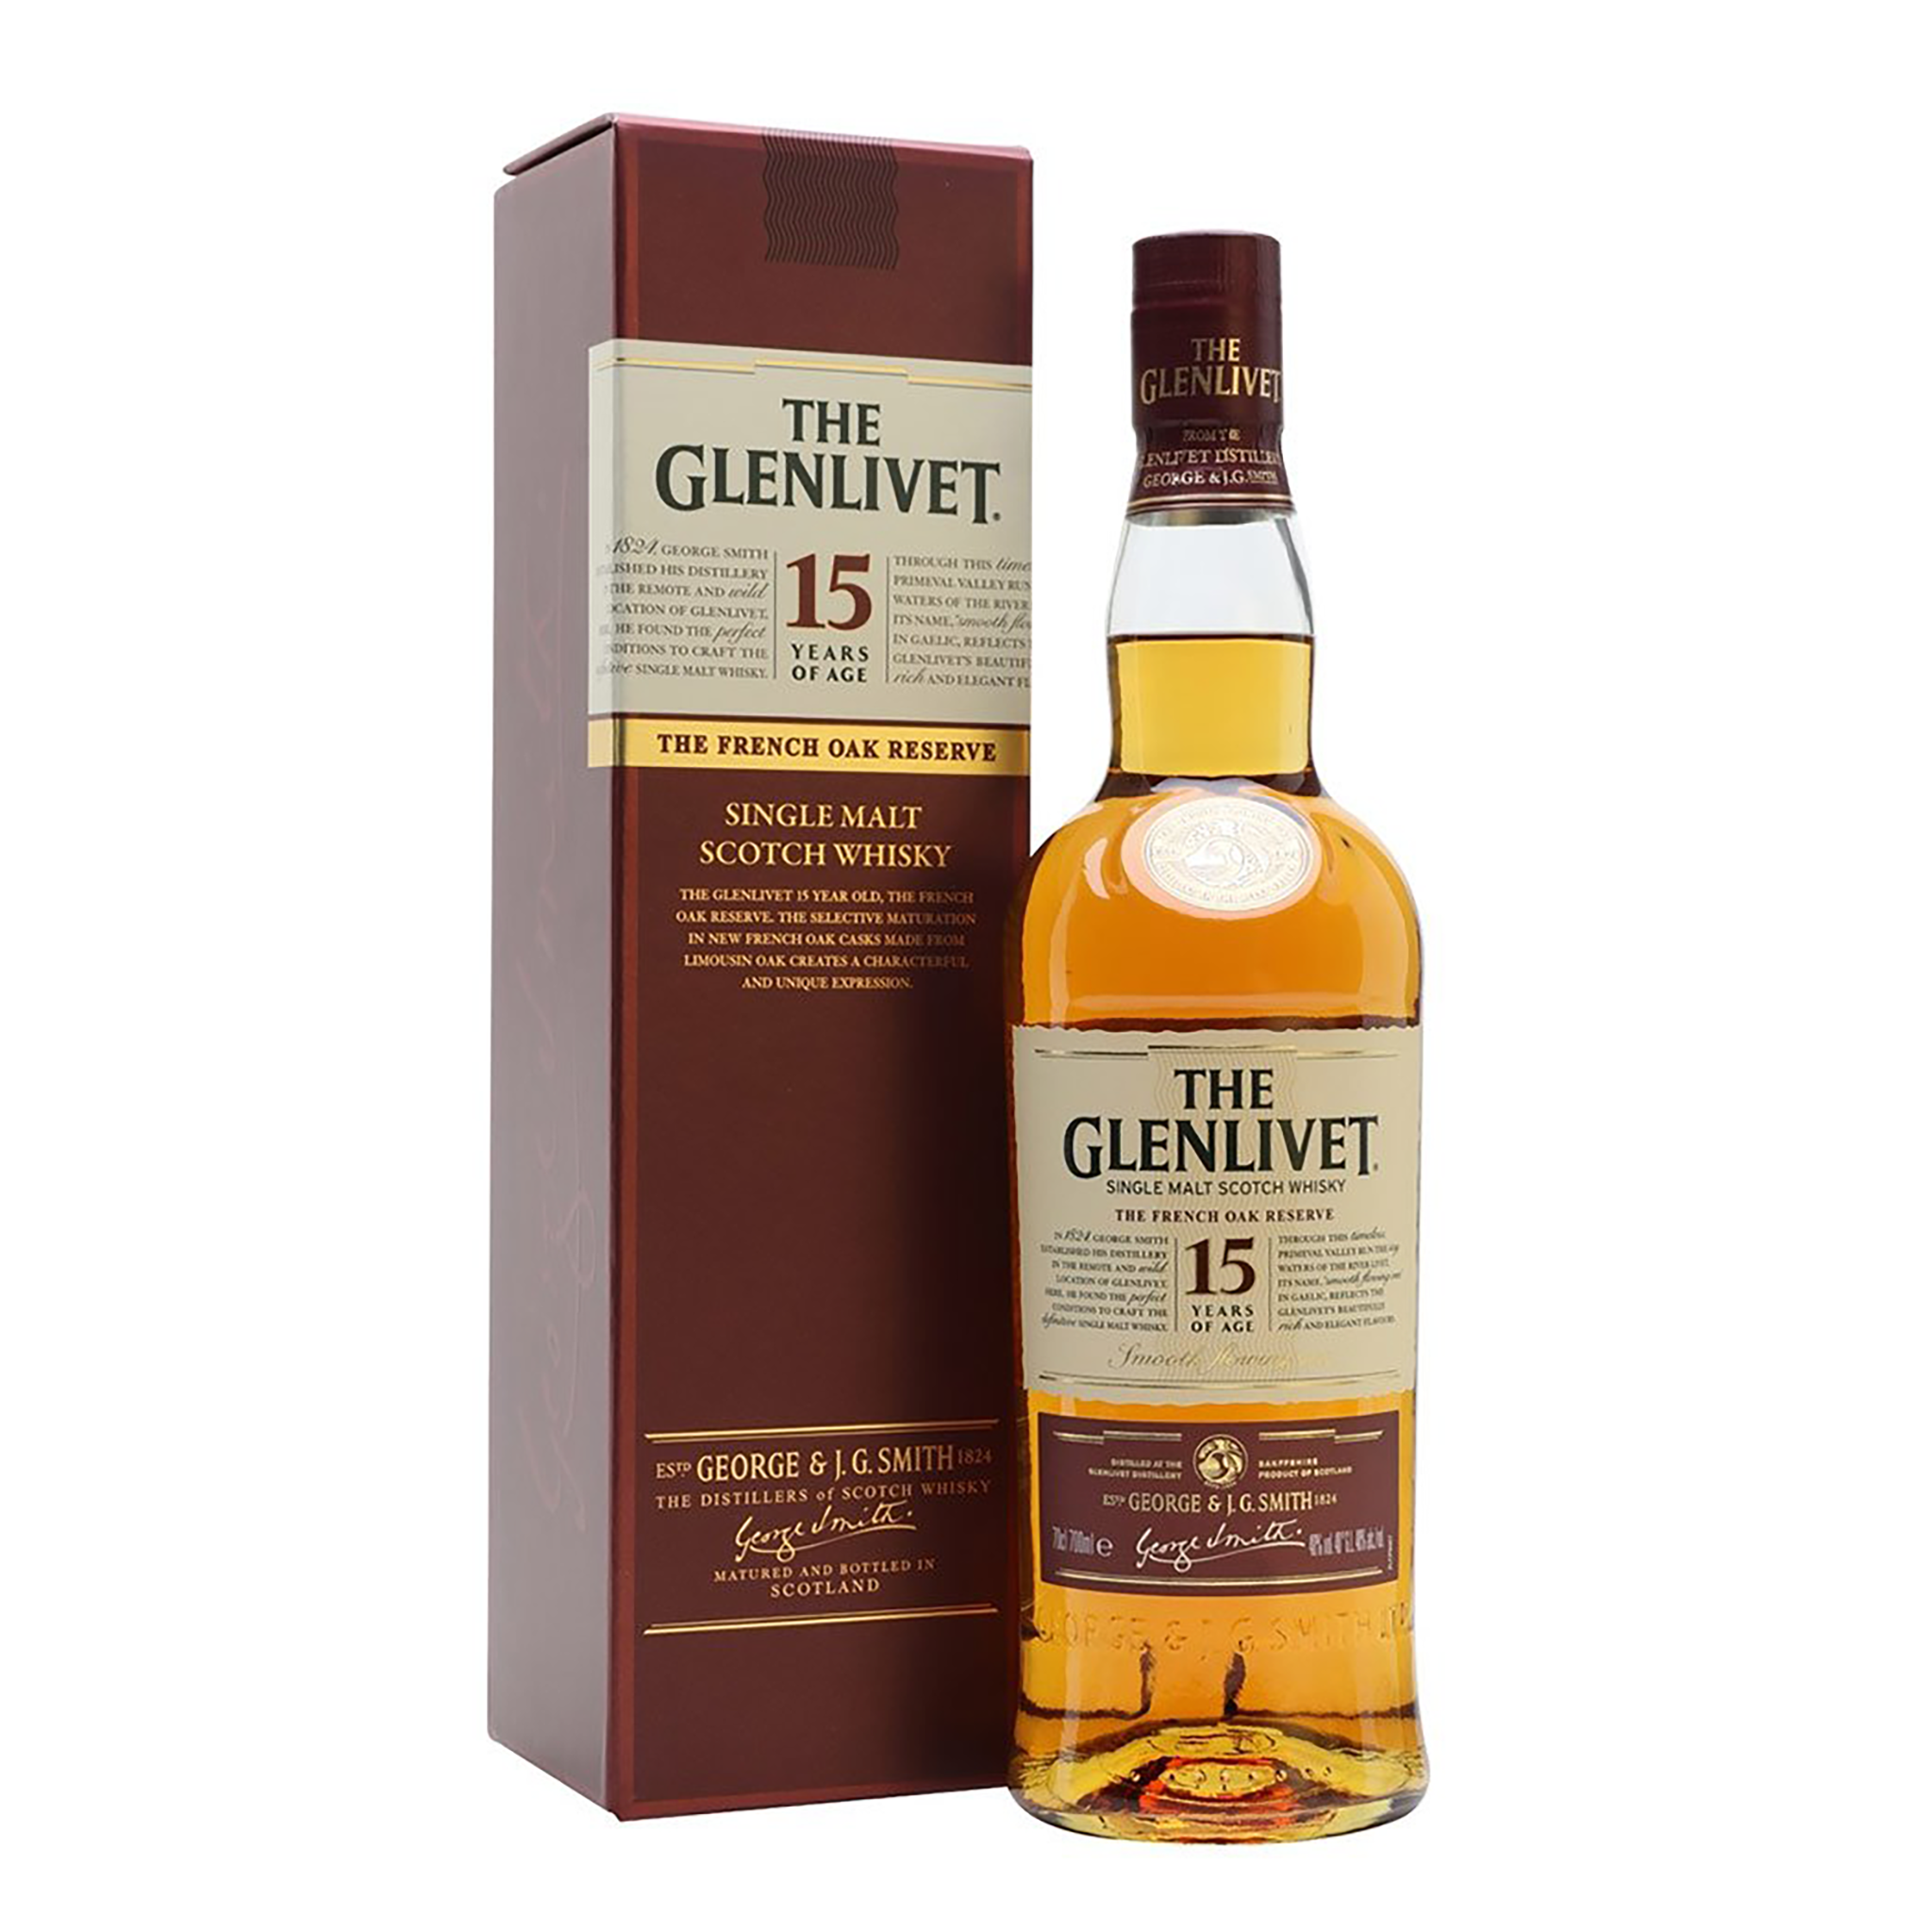 The Glenlivet 15 Year Old French Oak Reserve Single Malt Scotch Whisky 700ml